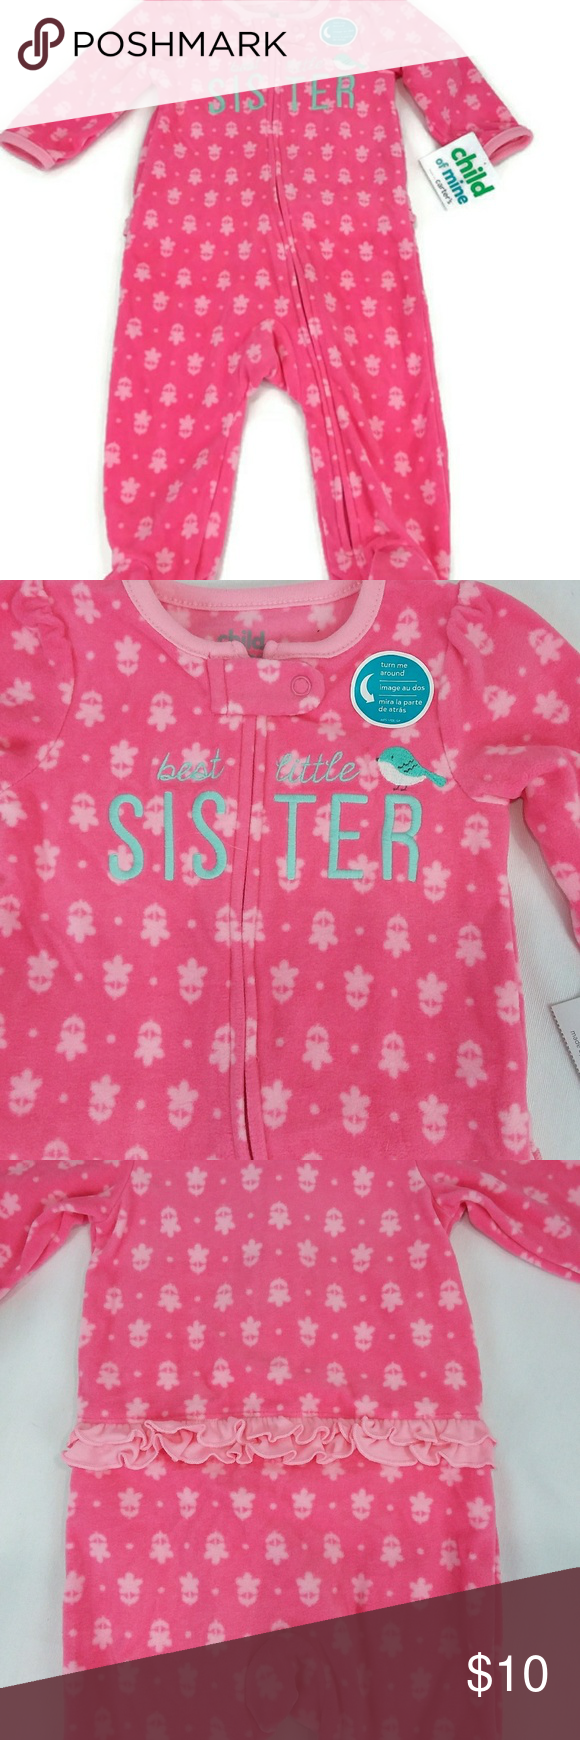 90dc207f56ad Carter s Baby Girl One-piece Footed Pajamas NWT